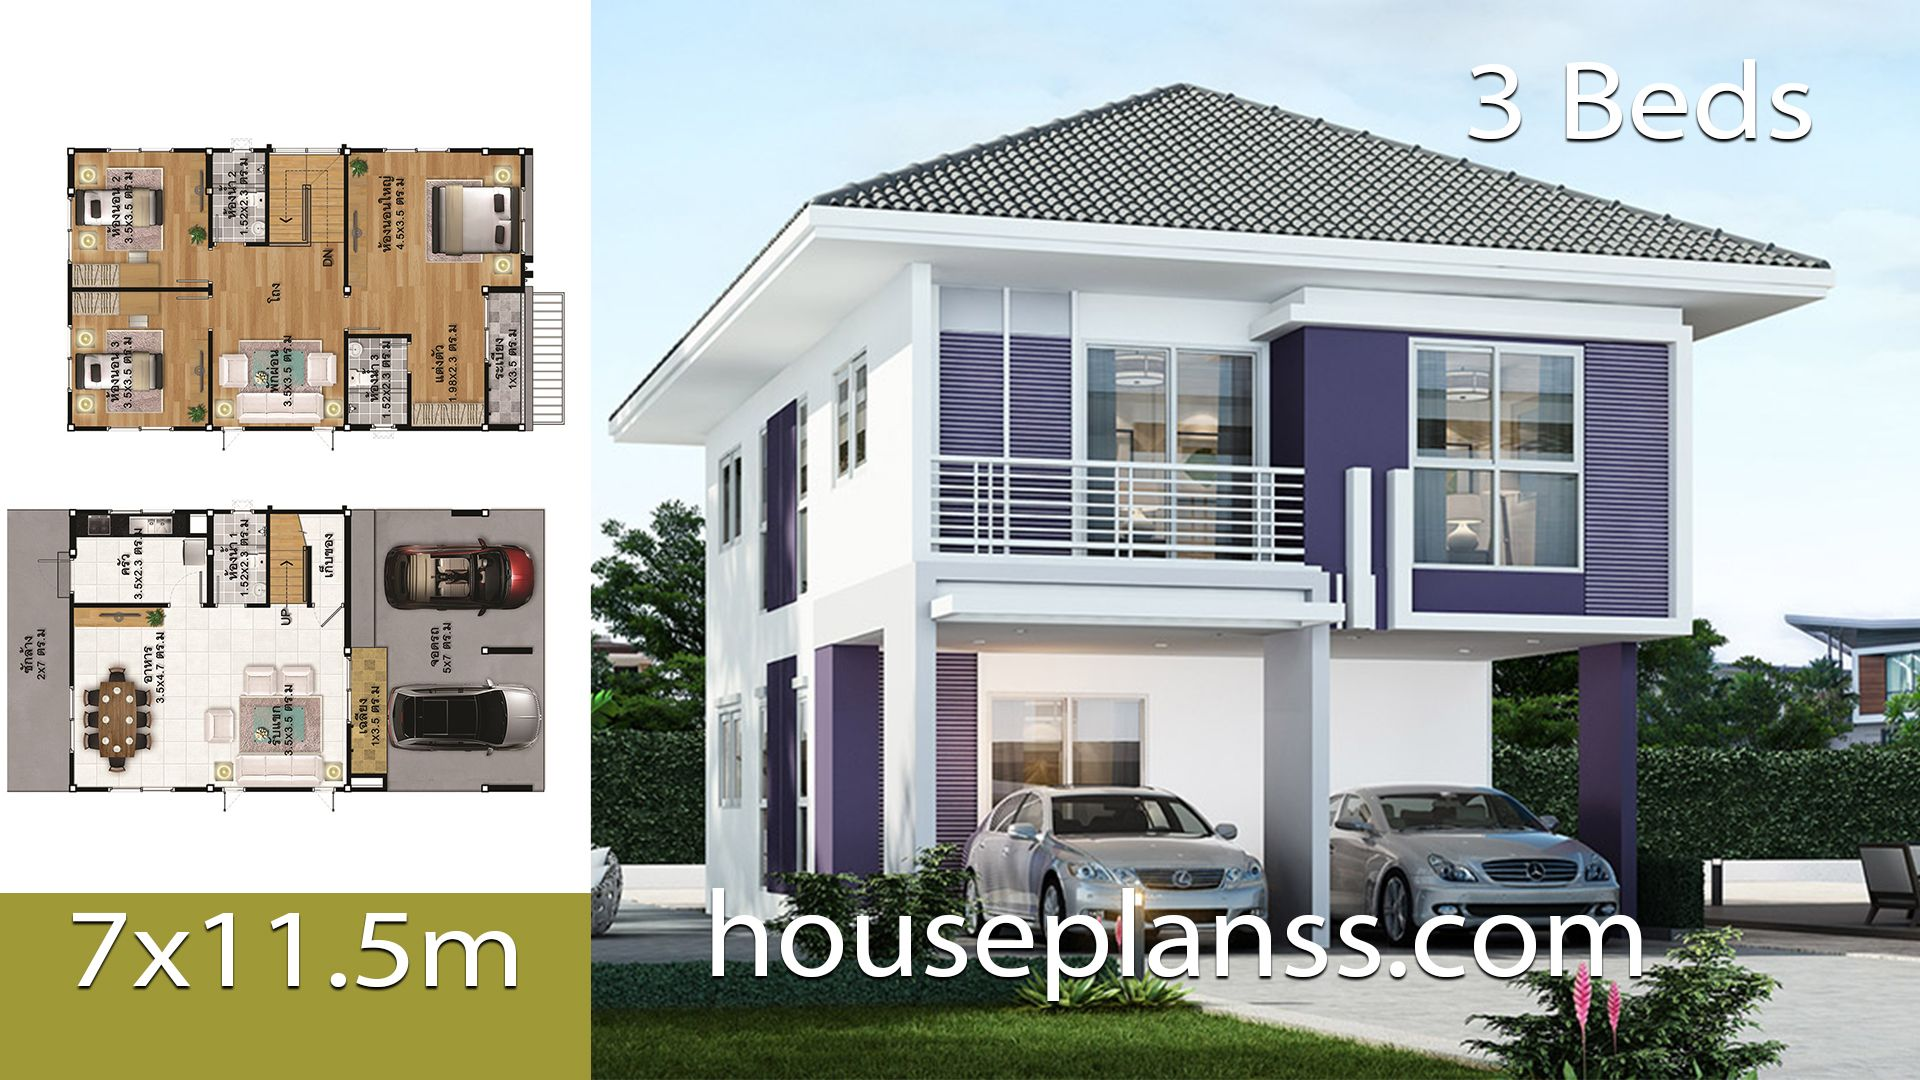 House Plans Idea 7x11 5 With 3 Bedrooms House Plans 3d In 2020 Home Design Plans Beautiful House Plans House Design